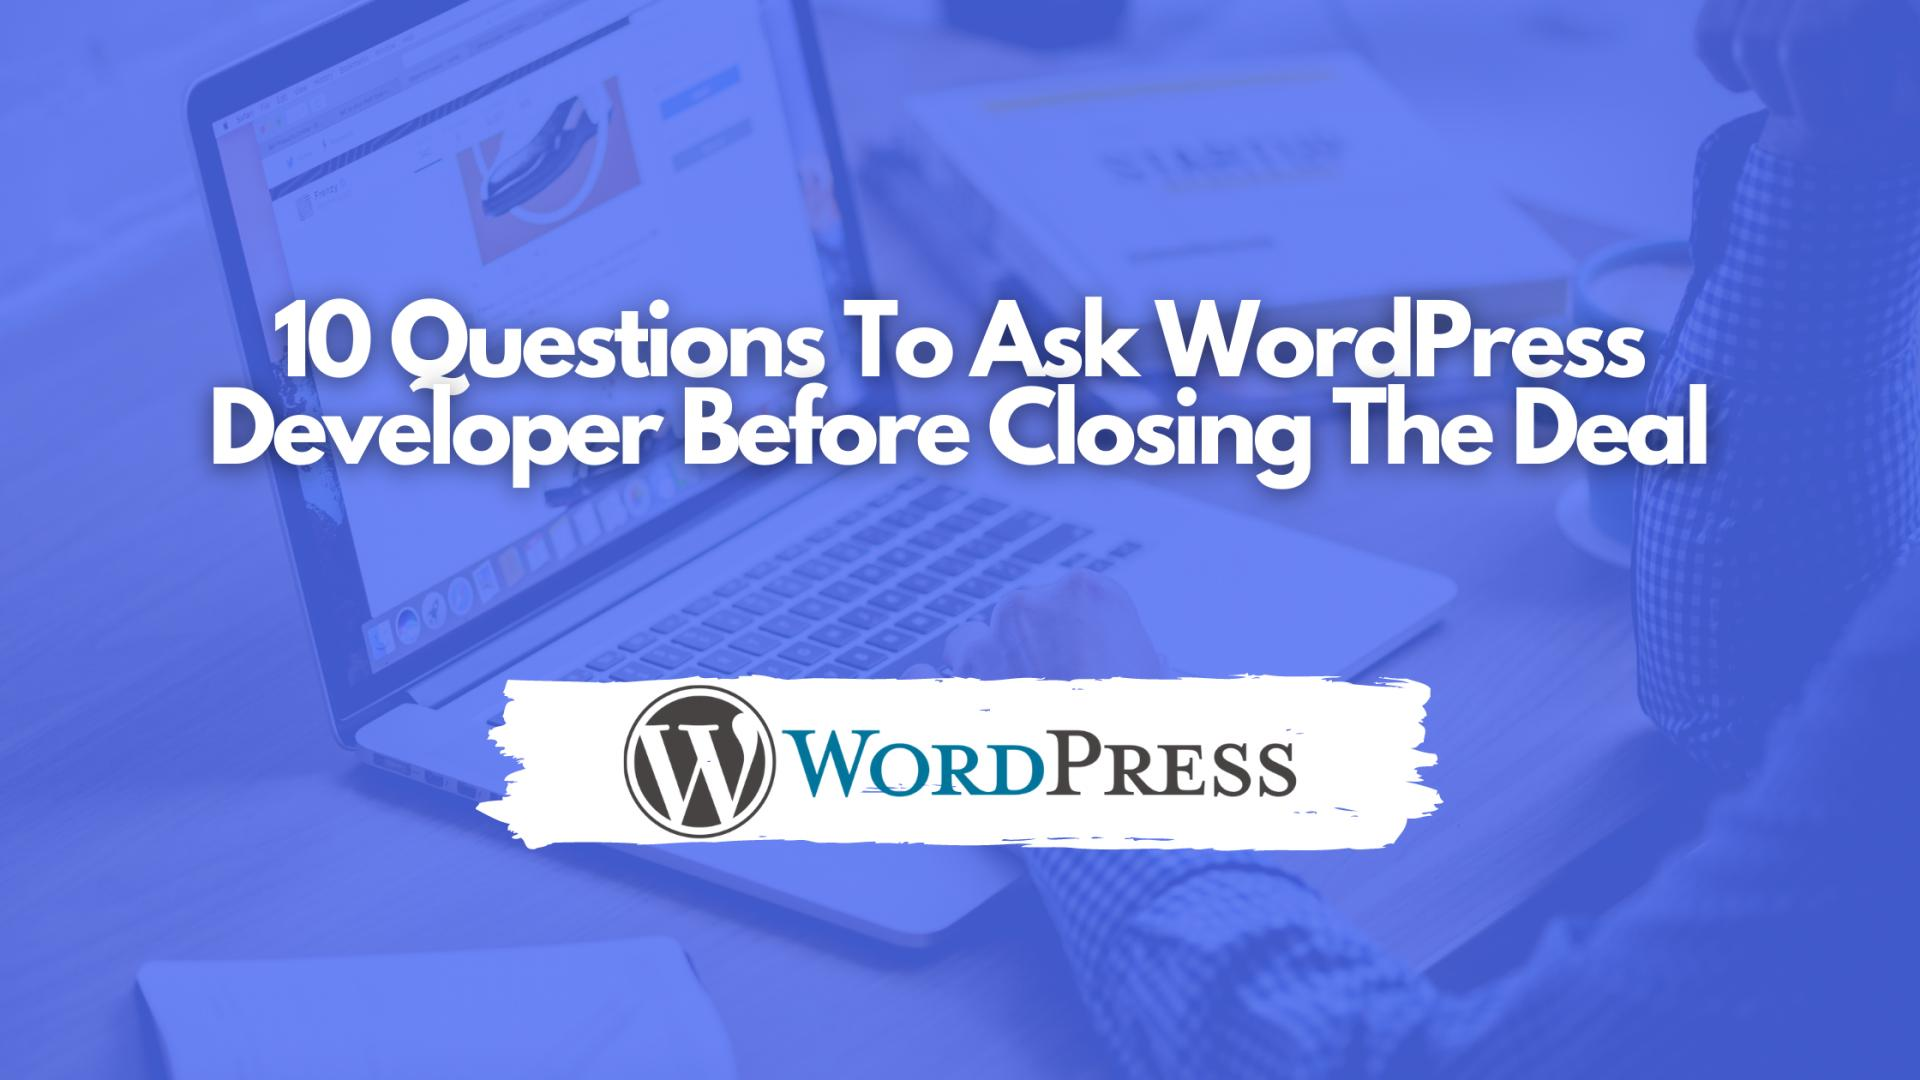 10 Questions To Ask Wordpress Developer Before Closing The Deal